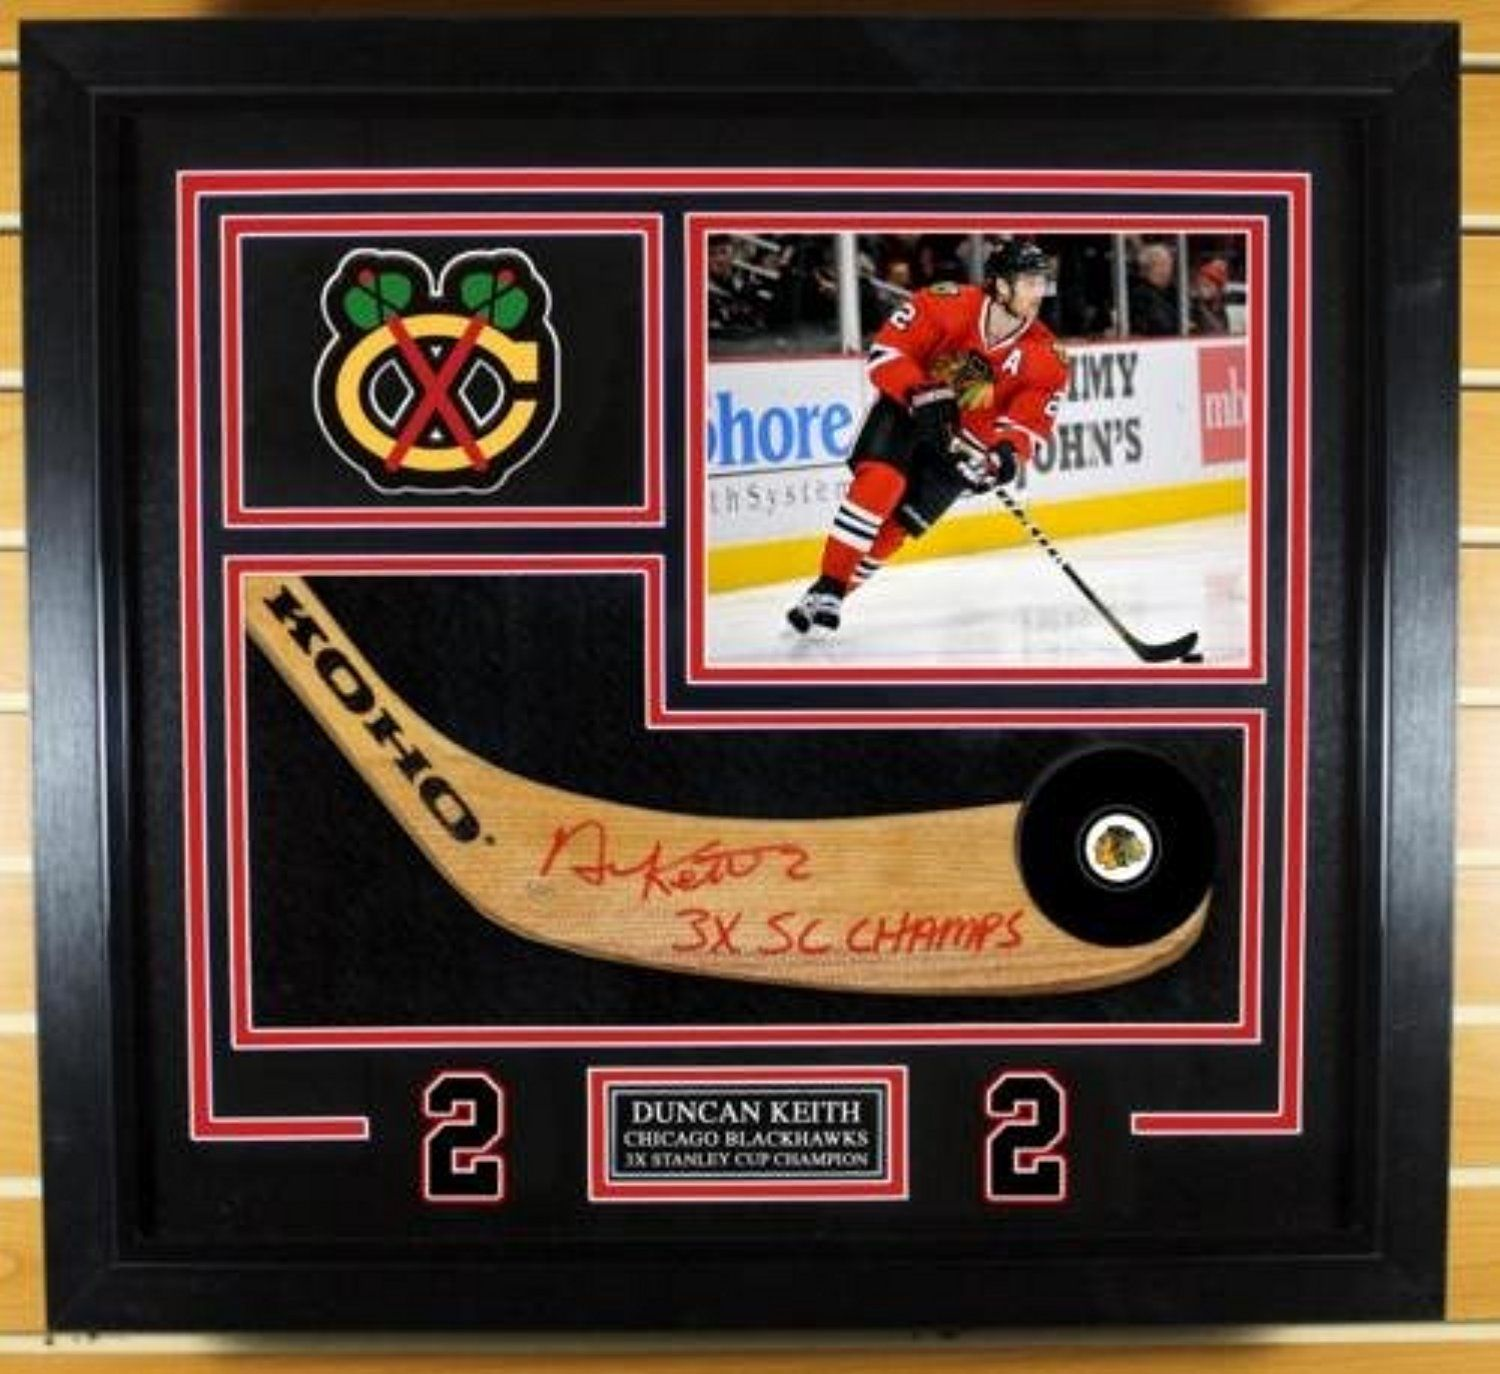 Duncan Keith Chicago Blackhawks Signed Autographed 3x Champ Stick ...